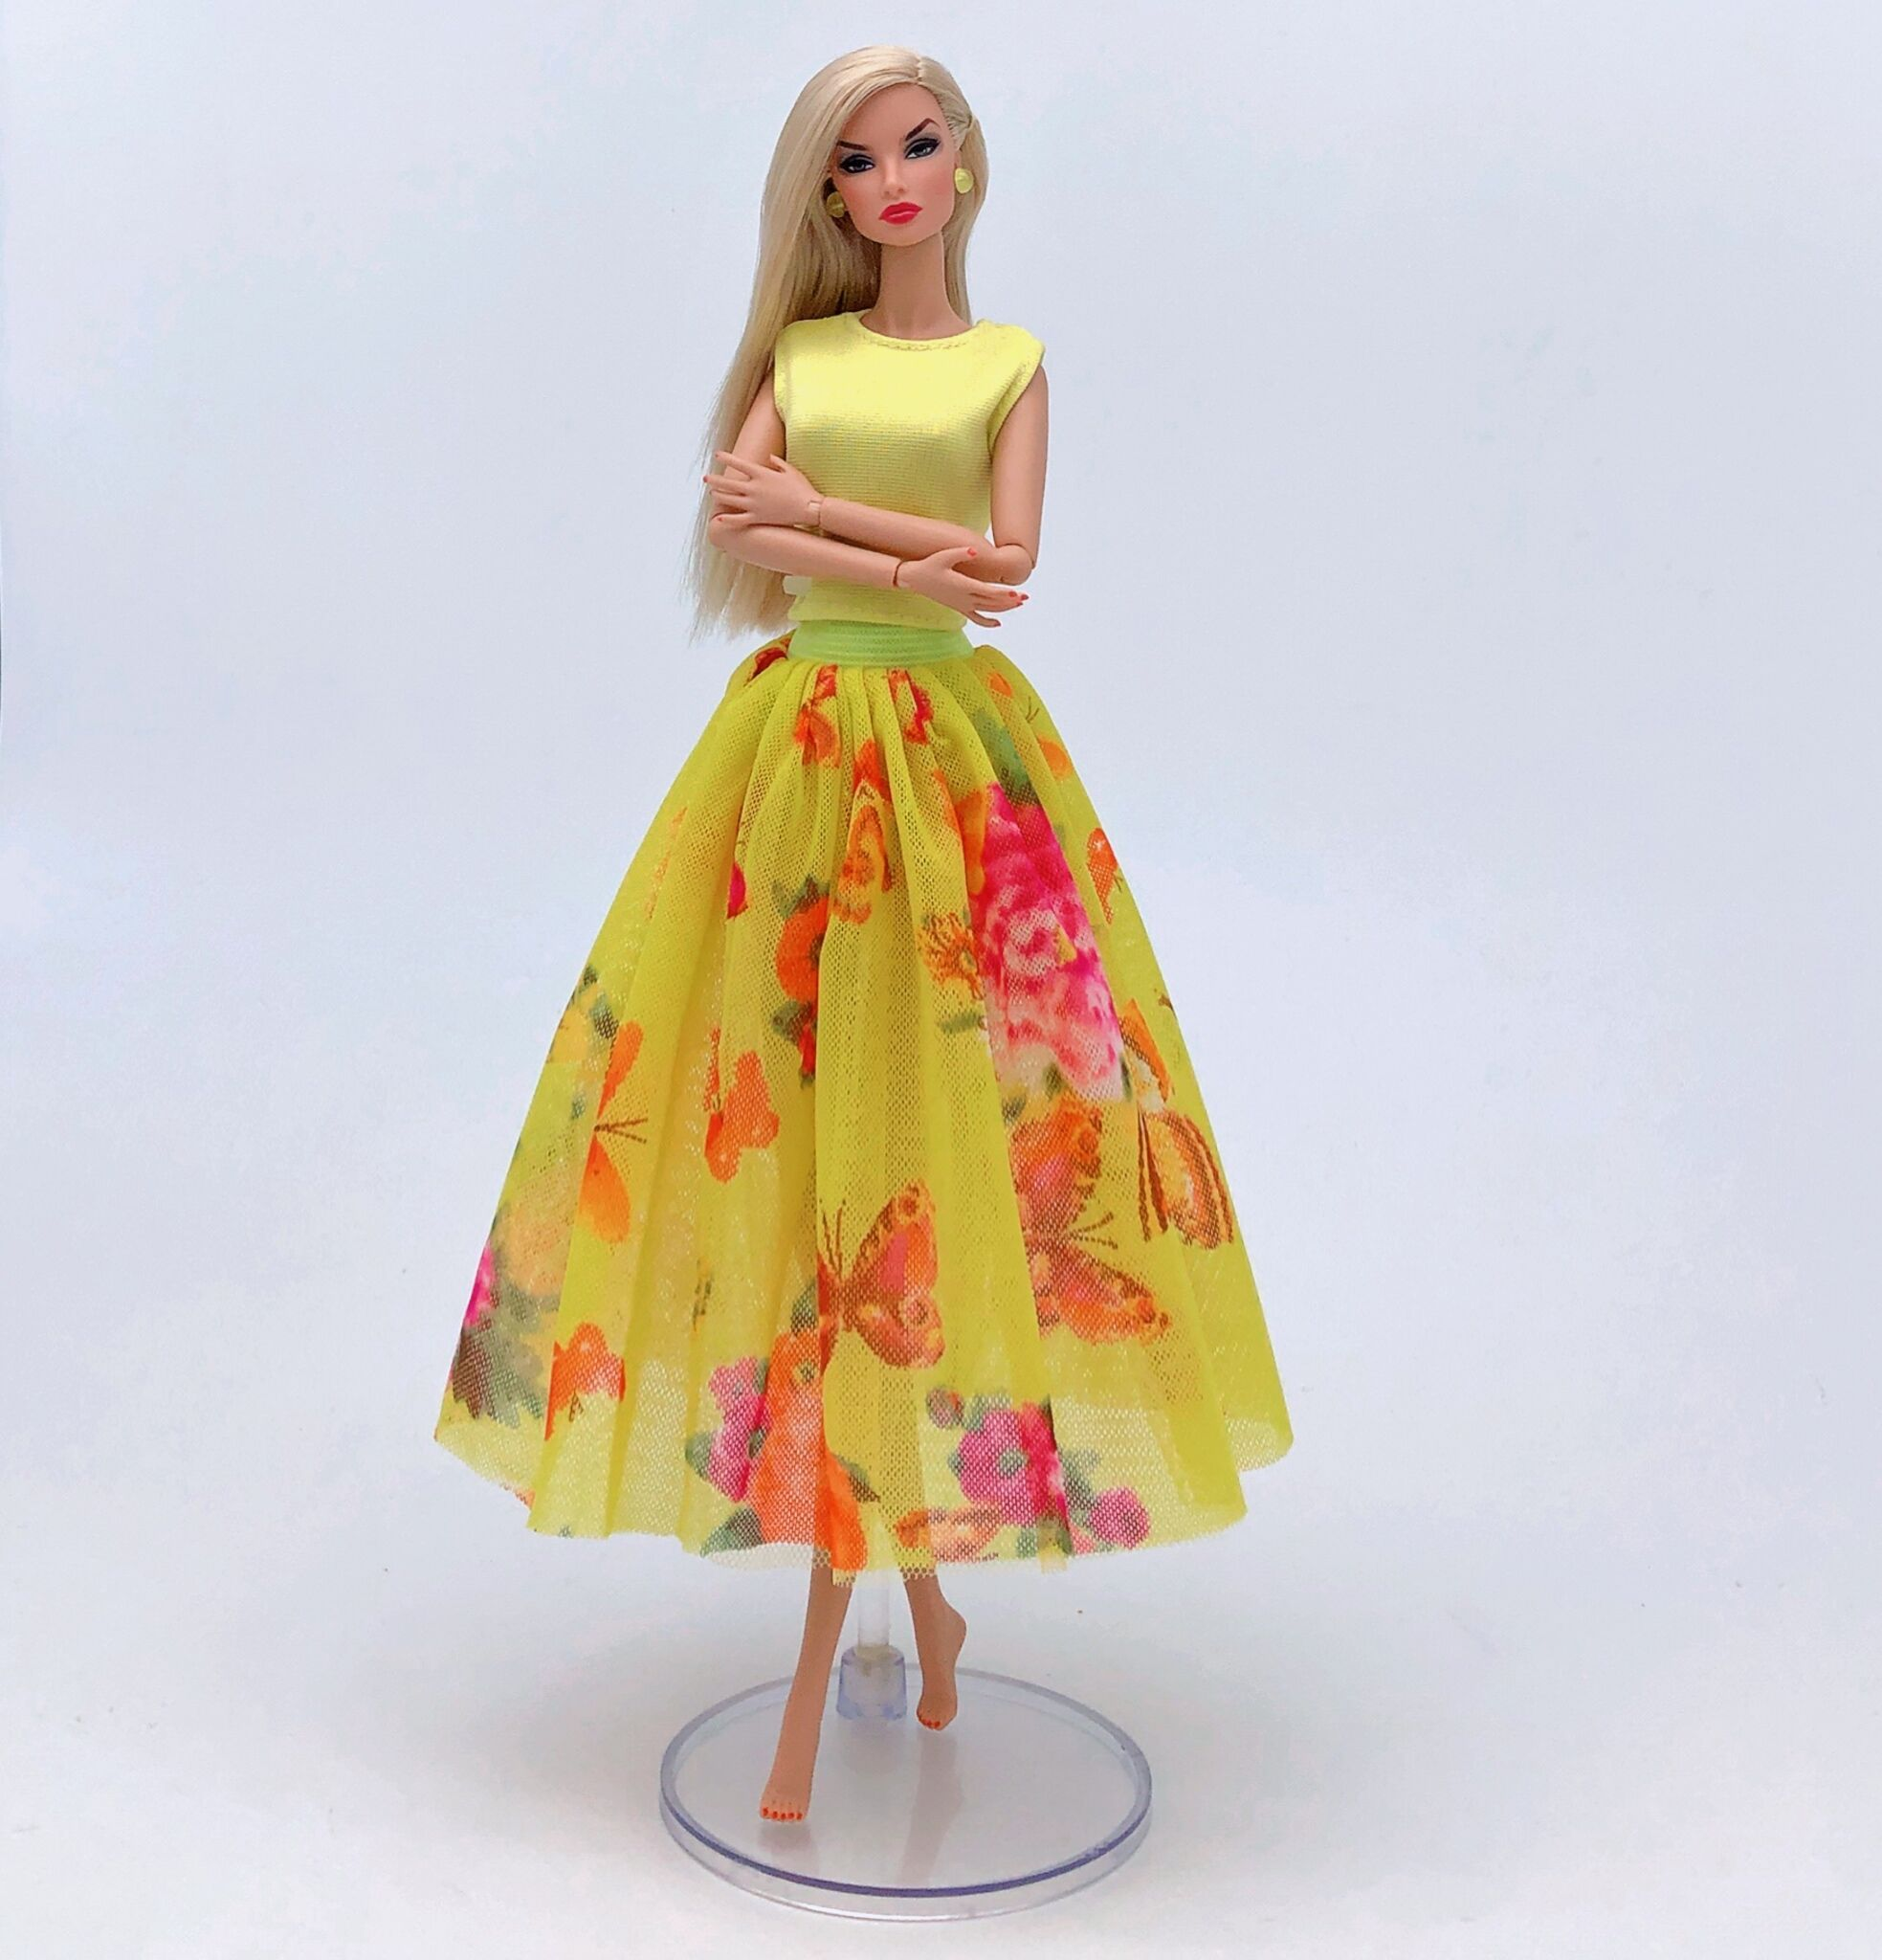 Party Dress top skirt Clothes for Barbie 1/6 original Doll Accessories Costume Play House Casual Dressing Up child Toys Gift|Dolls Accessories|Toys & Hobbies - AliExpress